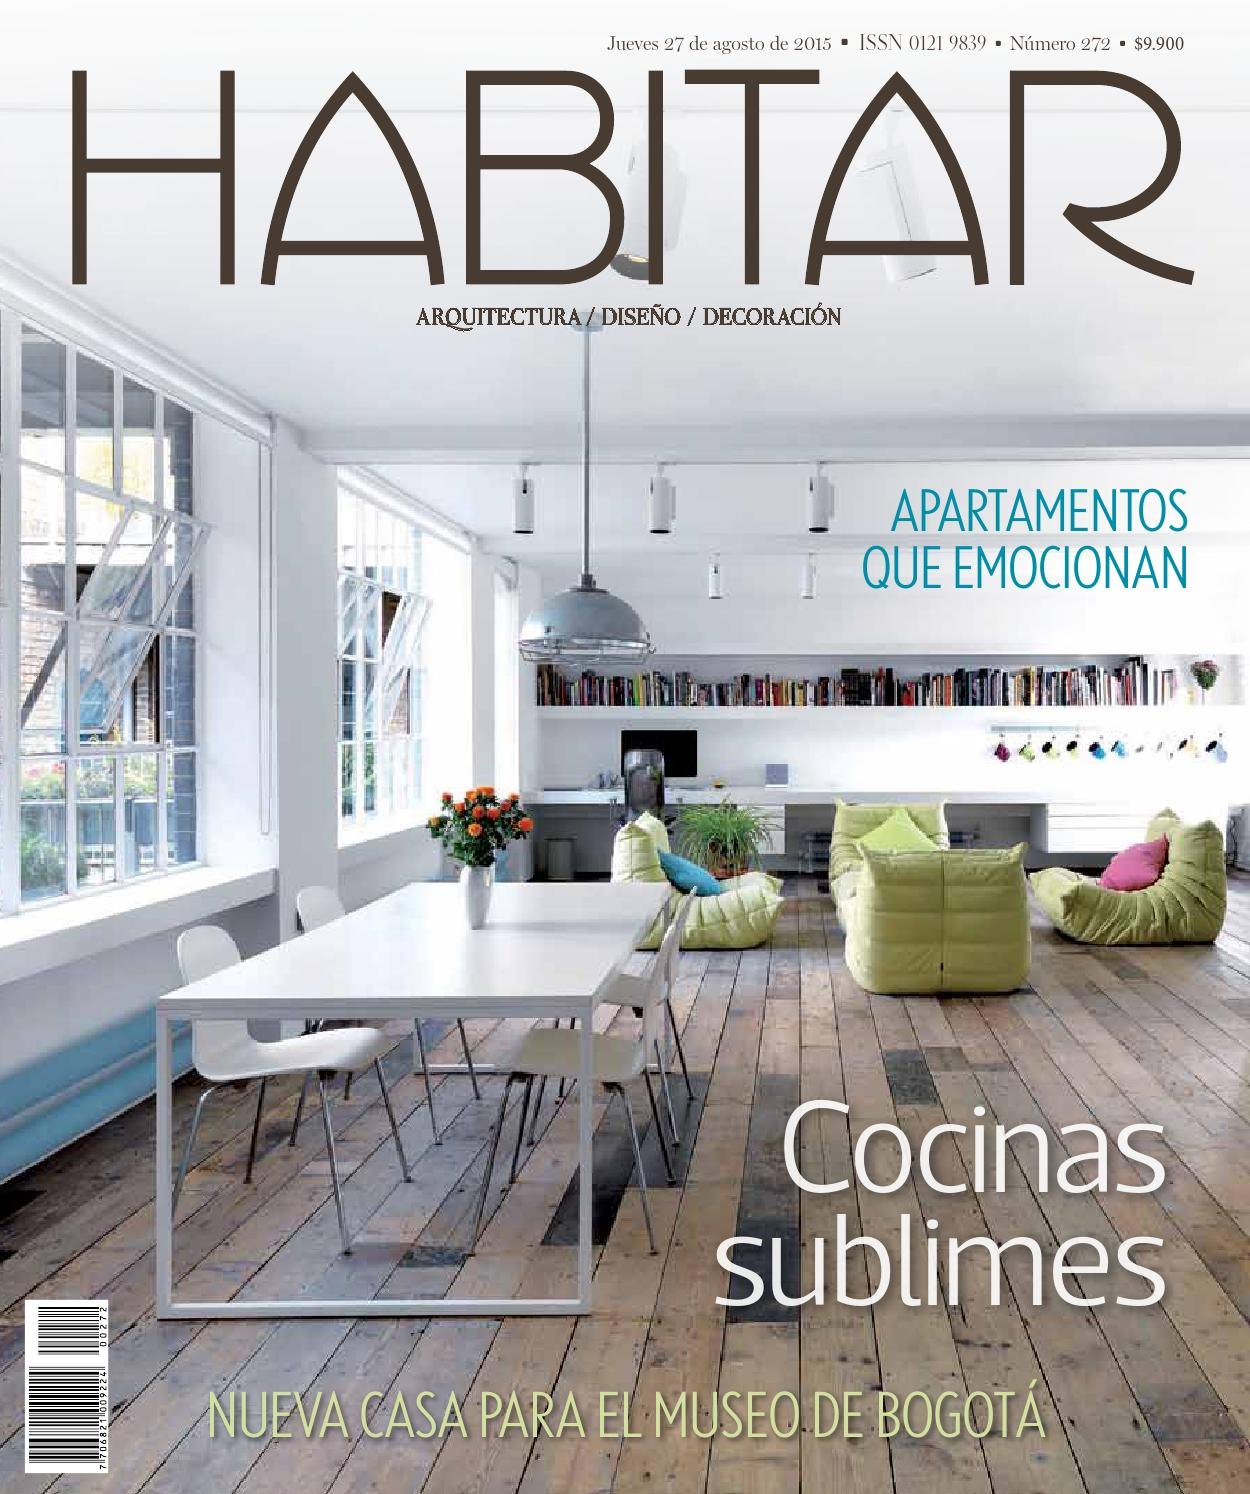 Habitar No. 272 - Agosto 2015 by Revista Metrocuadrado - issuu